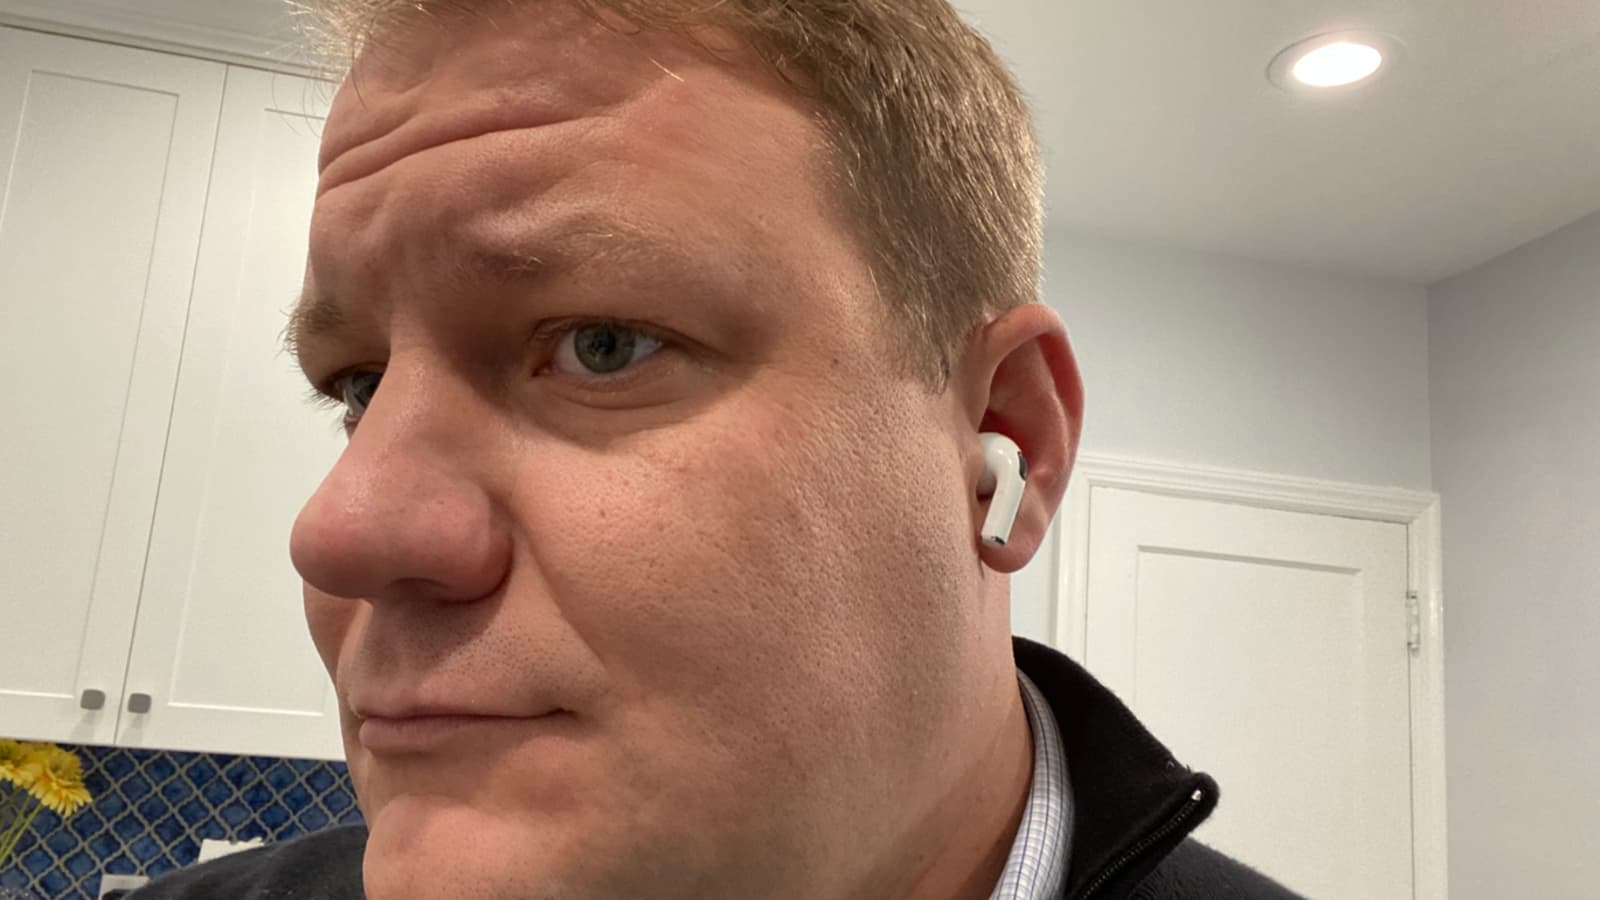 airpods pro in ear look